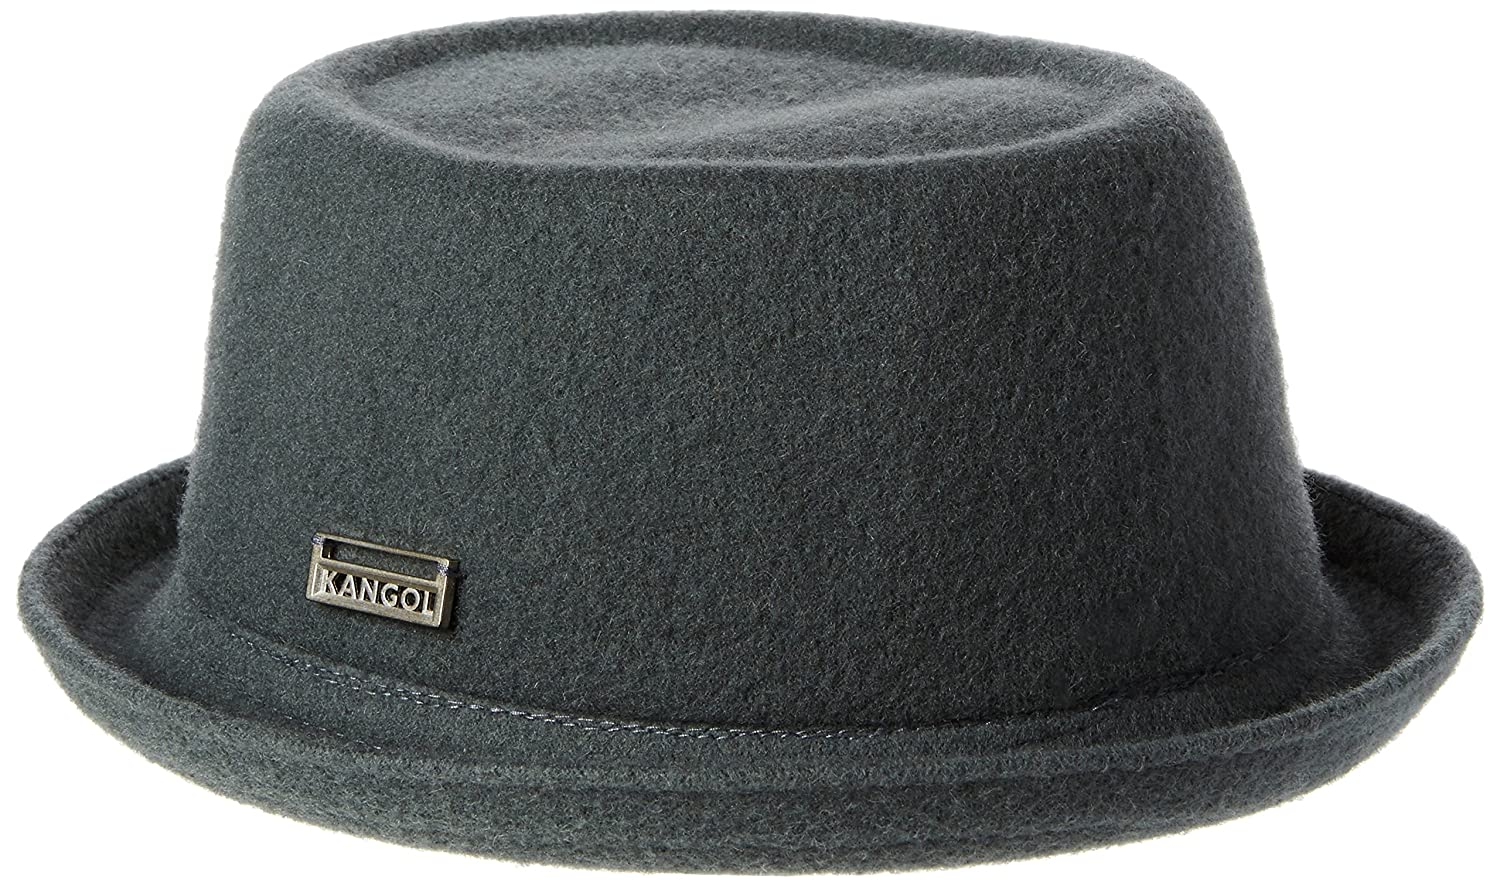 e9593b71314 Kangol Headwear Wool Mowbray Porkpie Hat  Amazon.co.uk  Clothing